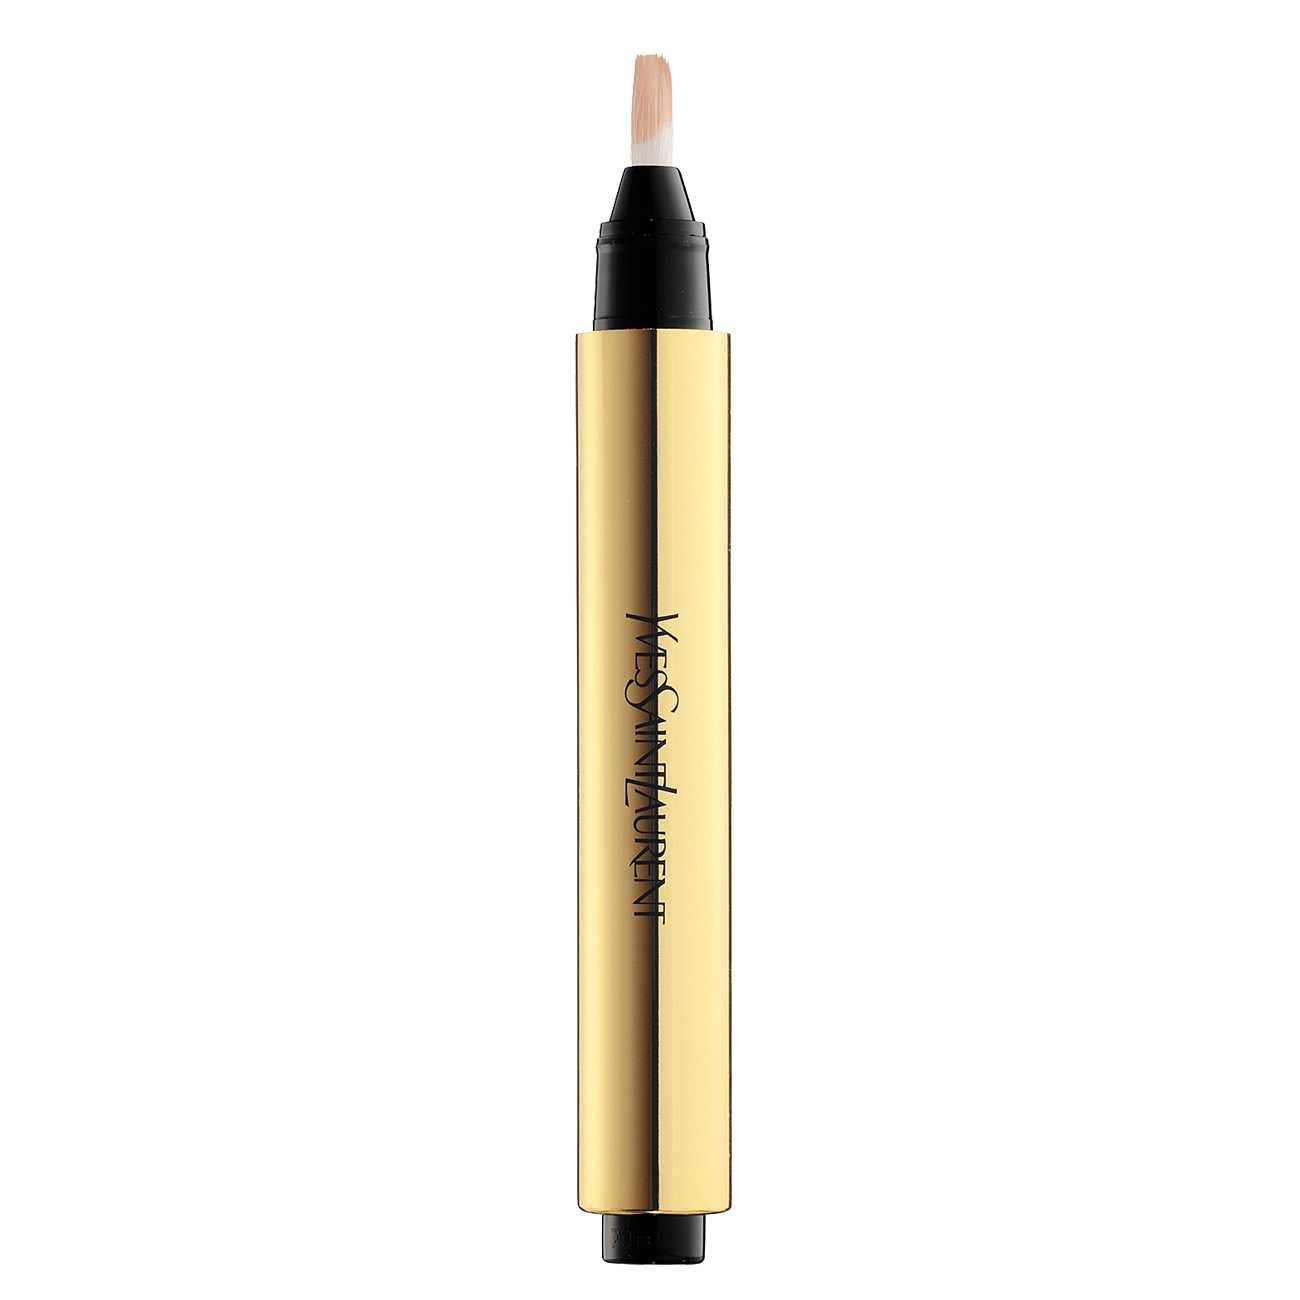 TOUCHE ECLAT RADIANT TOUCH 2.5 ML Luminous Radiance 1